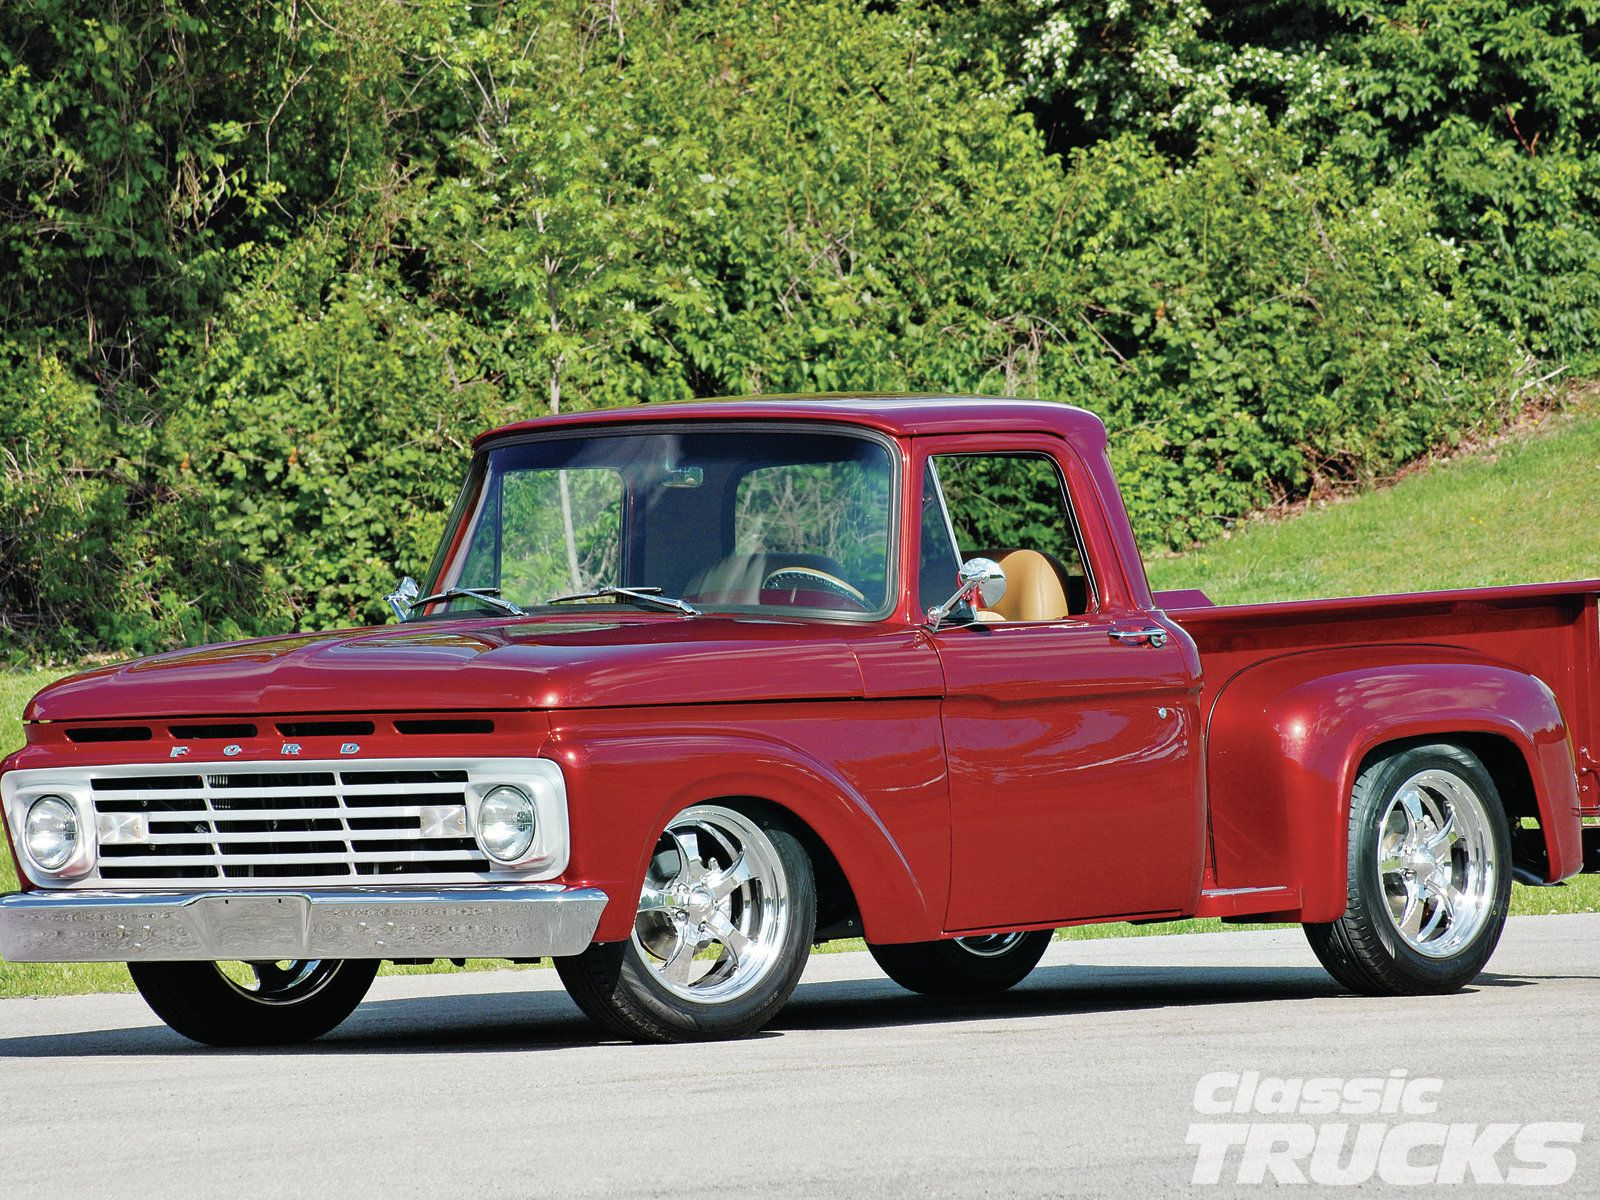 1956 chevy tattoo submited images pic2fly - 1963 Ford F100 Front Driver Side Photo 5